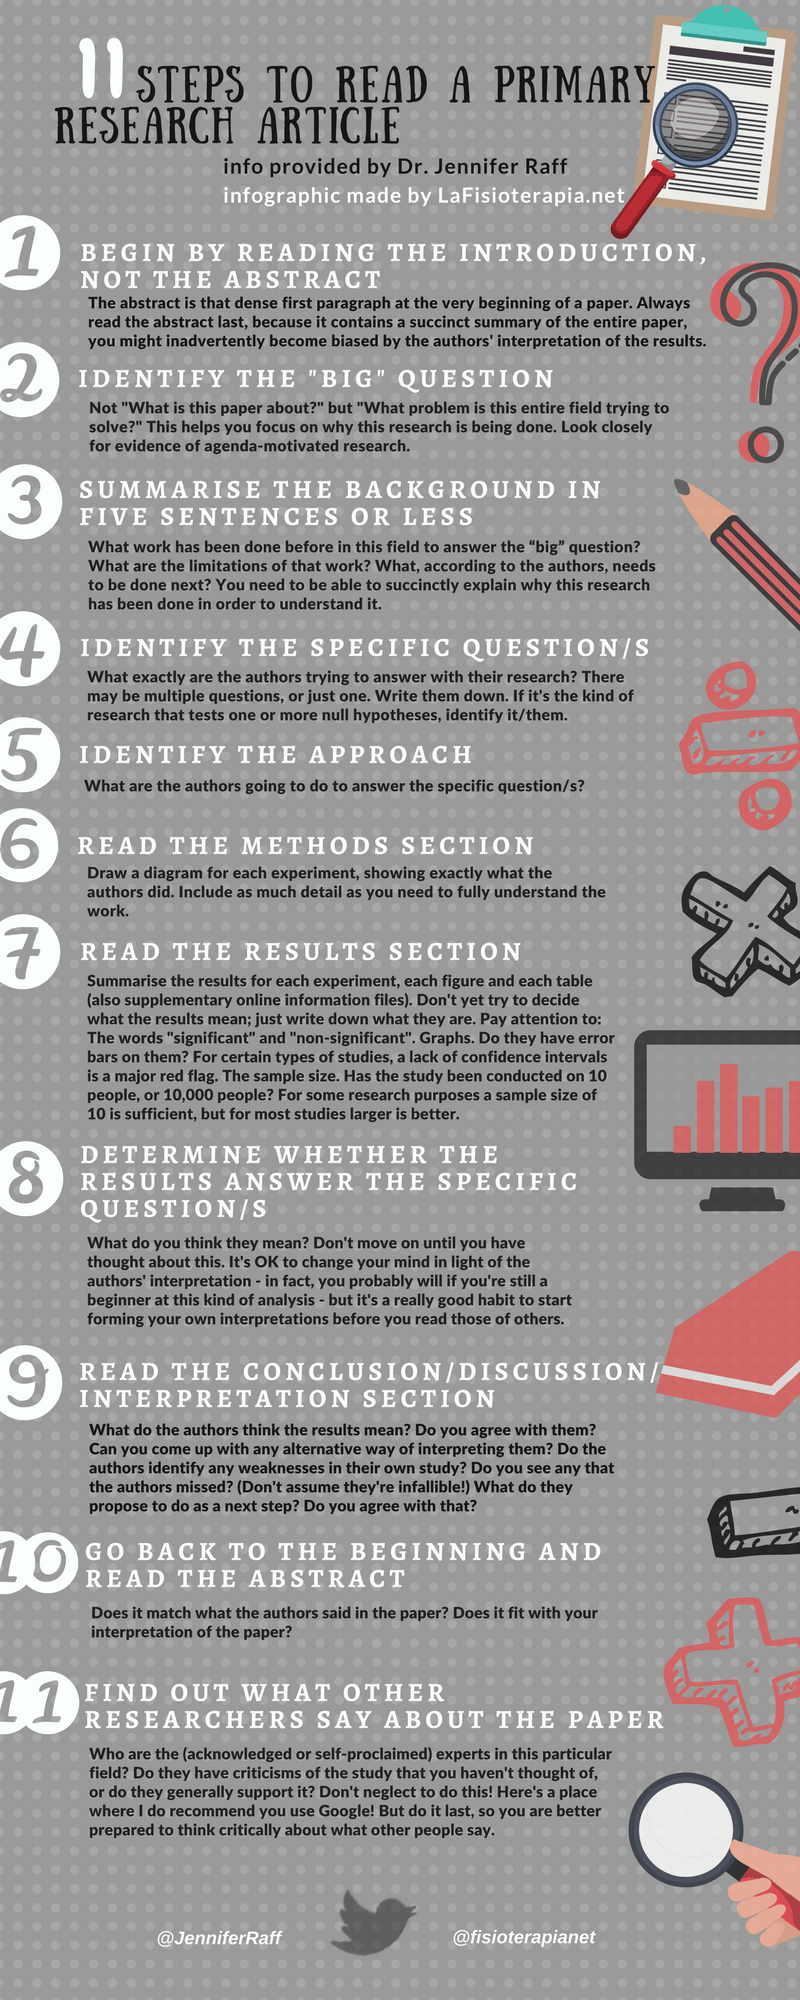 11 steps to understand research papers